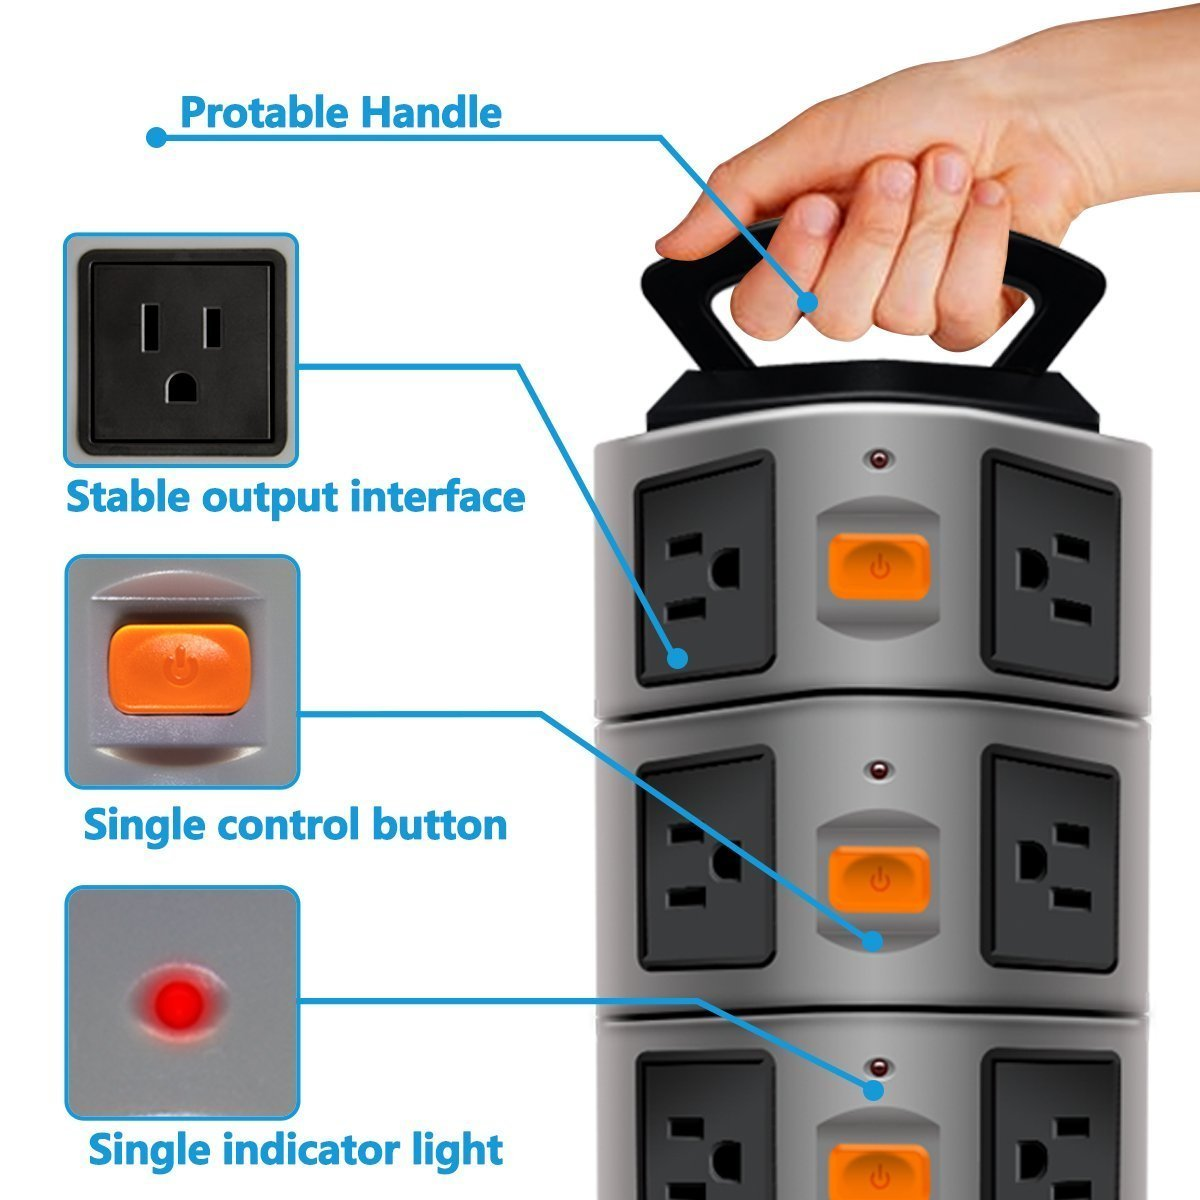 USB Power Strip Protector Electric Charge Station Plugs Socket 4 USB Slot Extension Cord